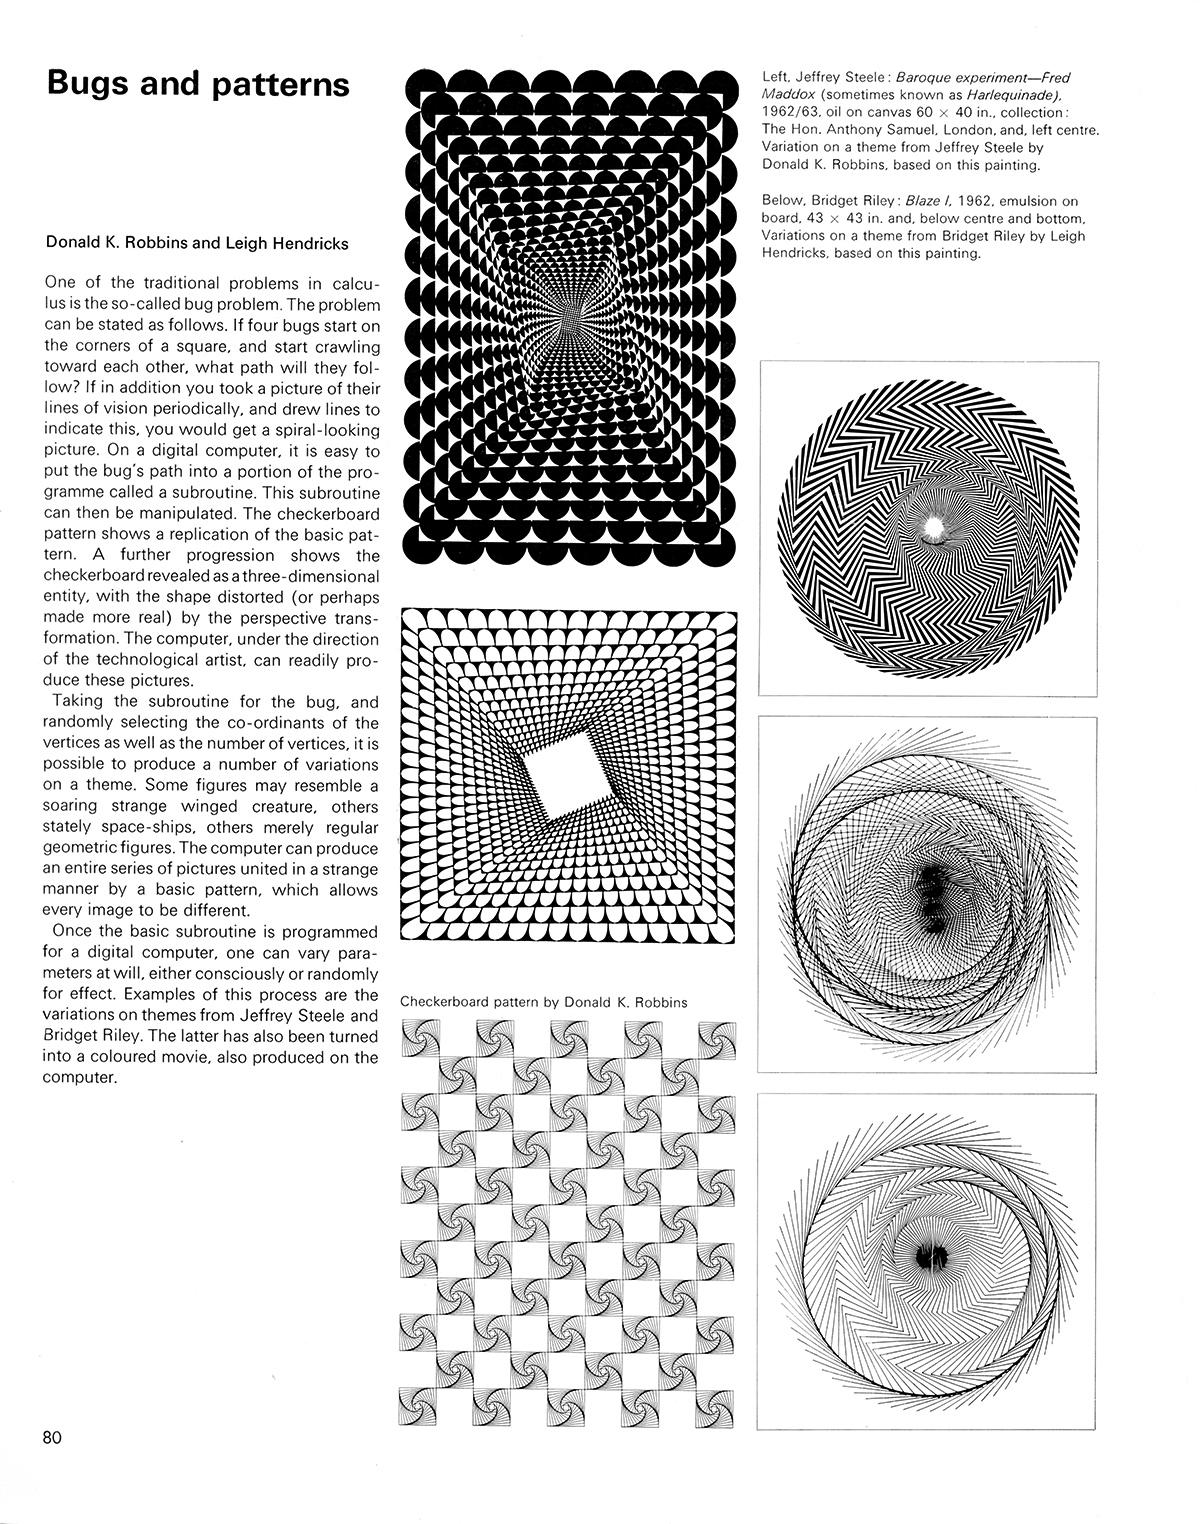 Bugs and patterns by Donald K. Robbins and Leigh Hendricks. Cybernetic Serendipity: The Computer and the Arts, Studio International Special Issue, 1968, page 80.